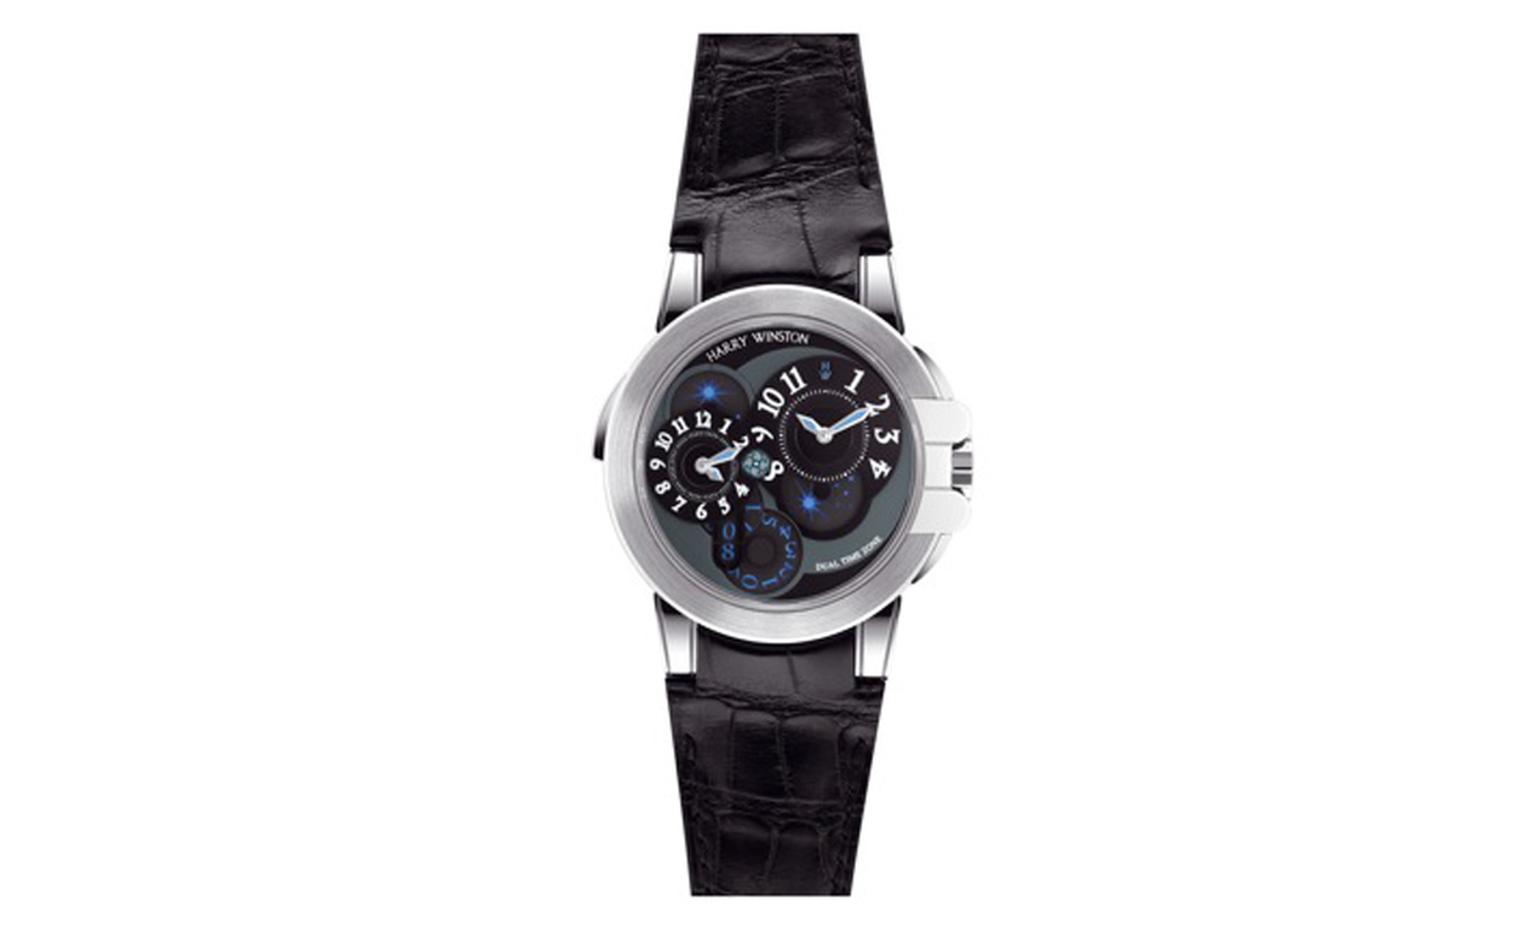 Harry Winston Ocean Dual Time watch worn by Christian Bale